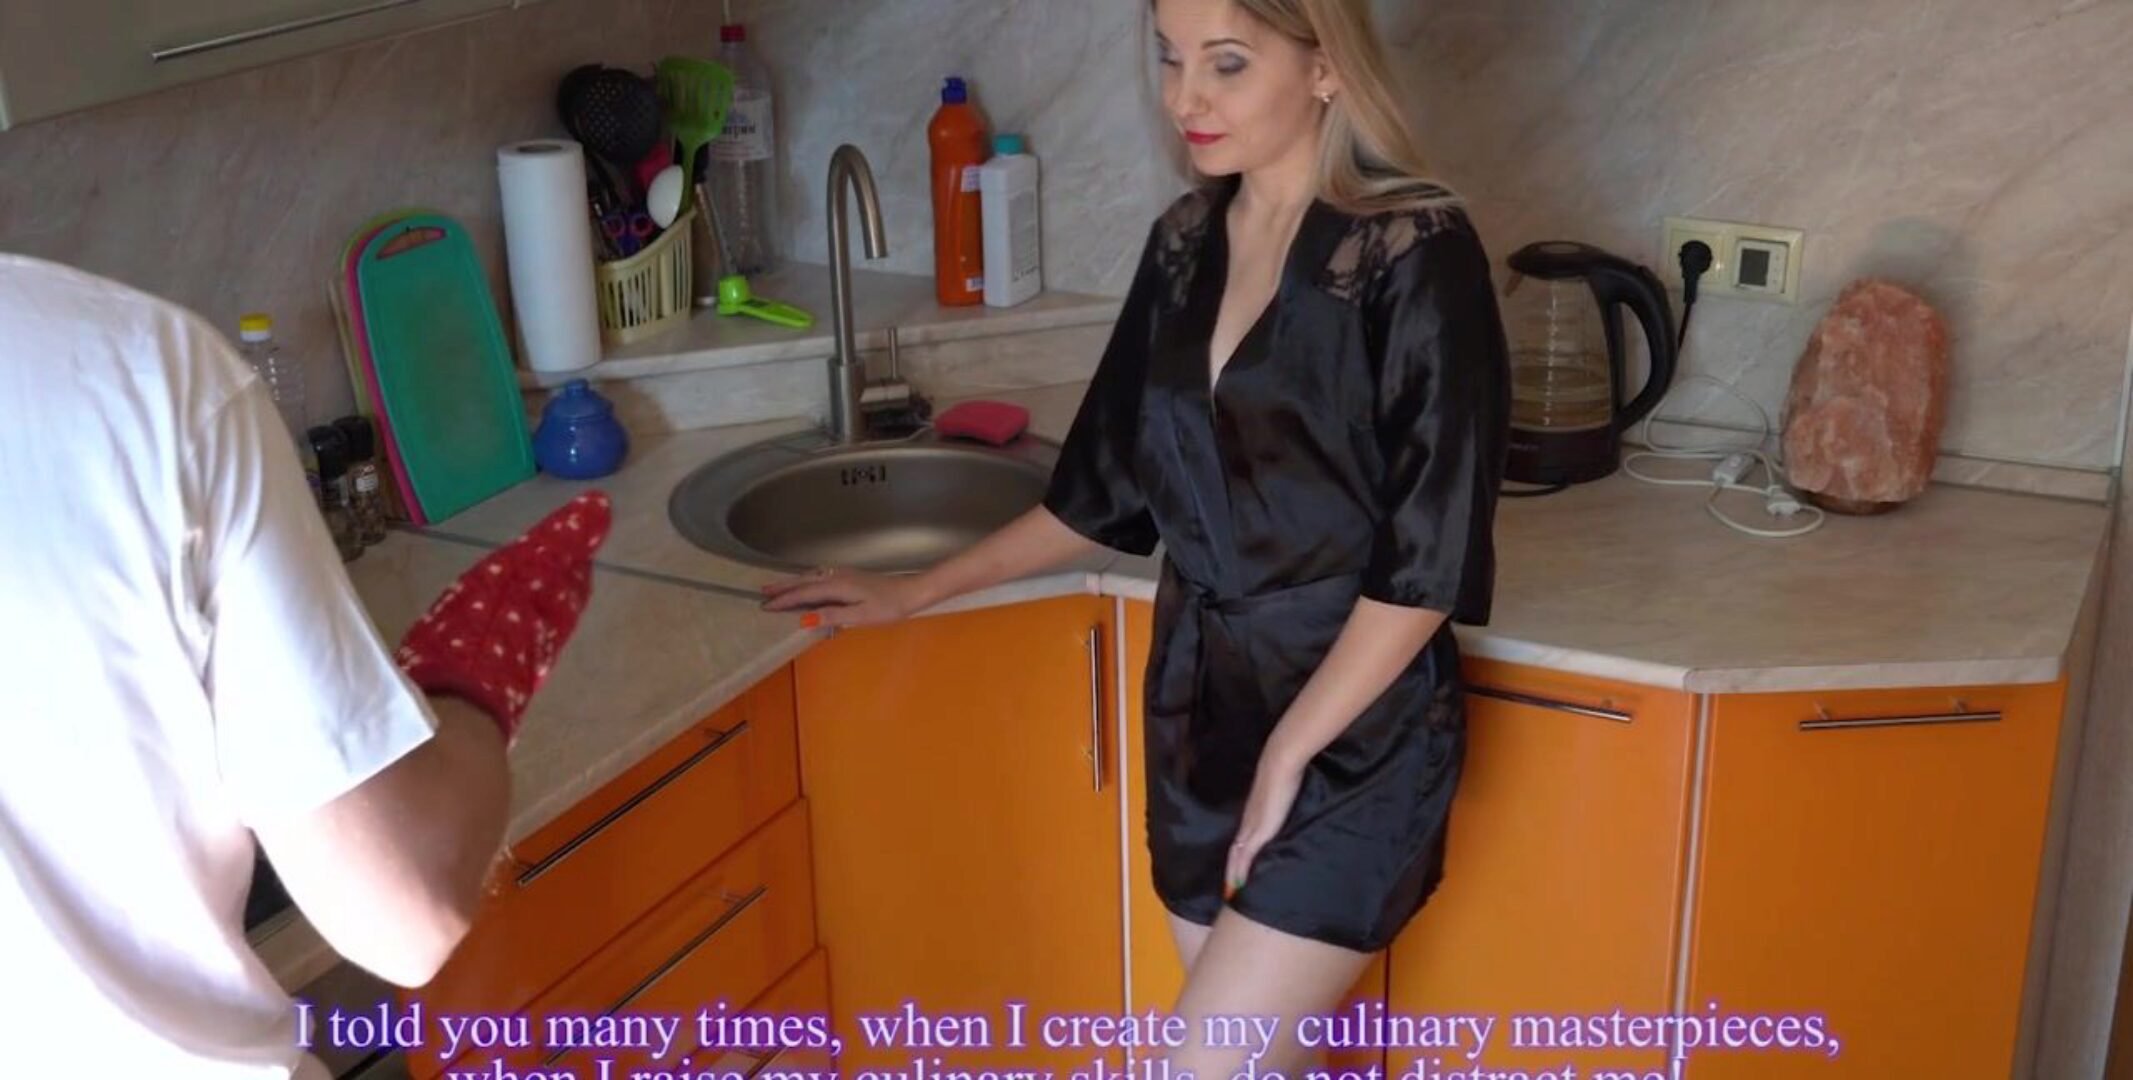 Sexy Wife Cheats on Husband with Window Cleaner - Roleplay by Letty Black